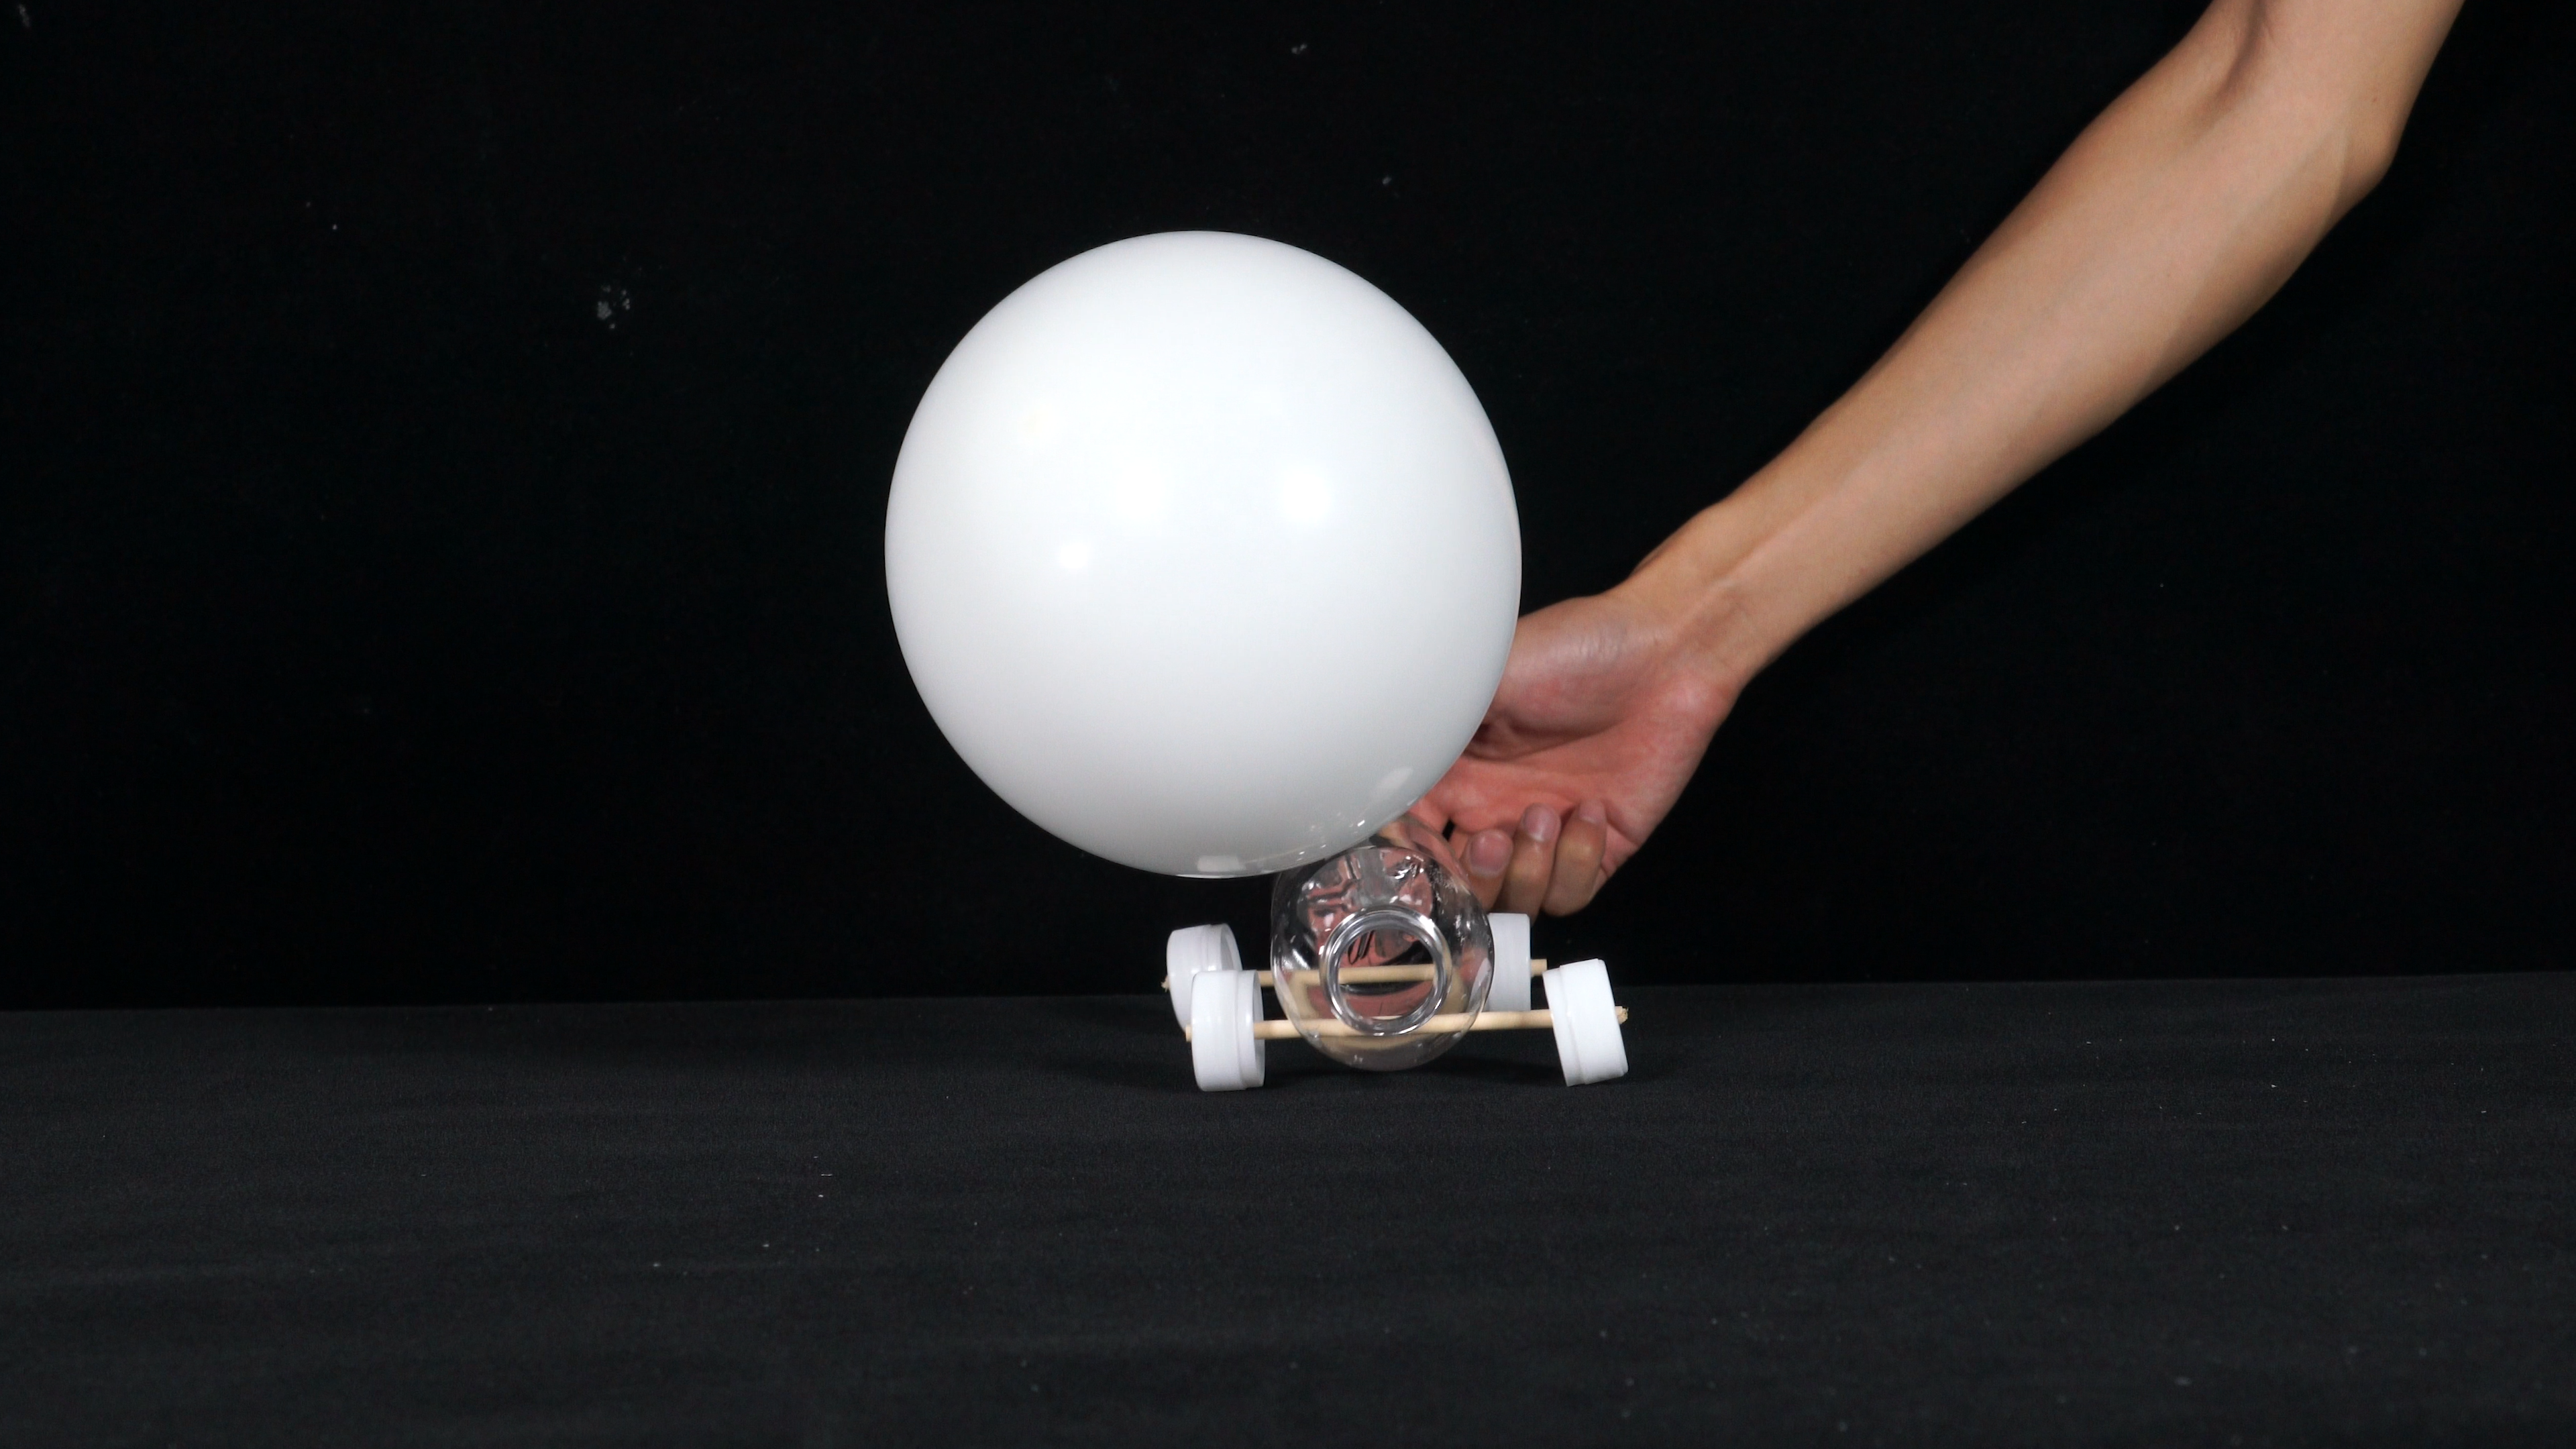 How to Make an Air-Oowered Balloon Car Science Experiment Step 1